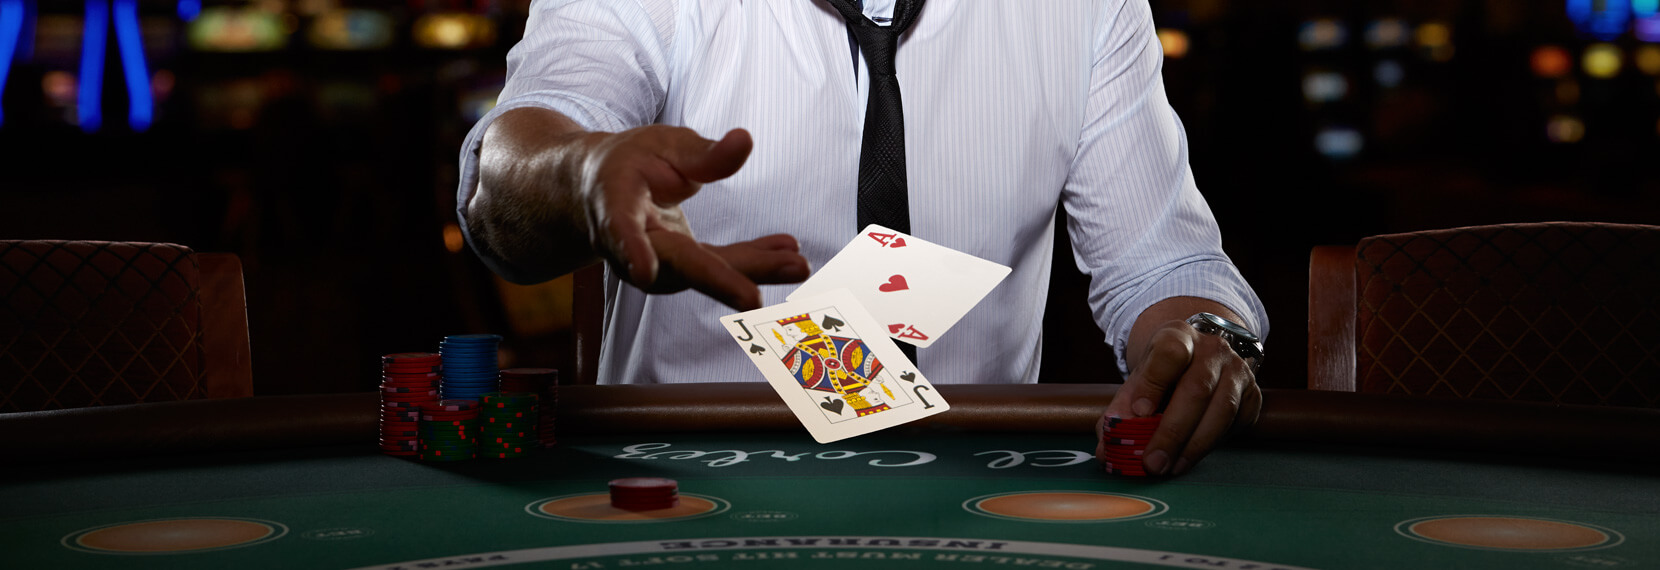 Blackjack: plus qu'un divertissement